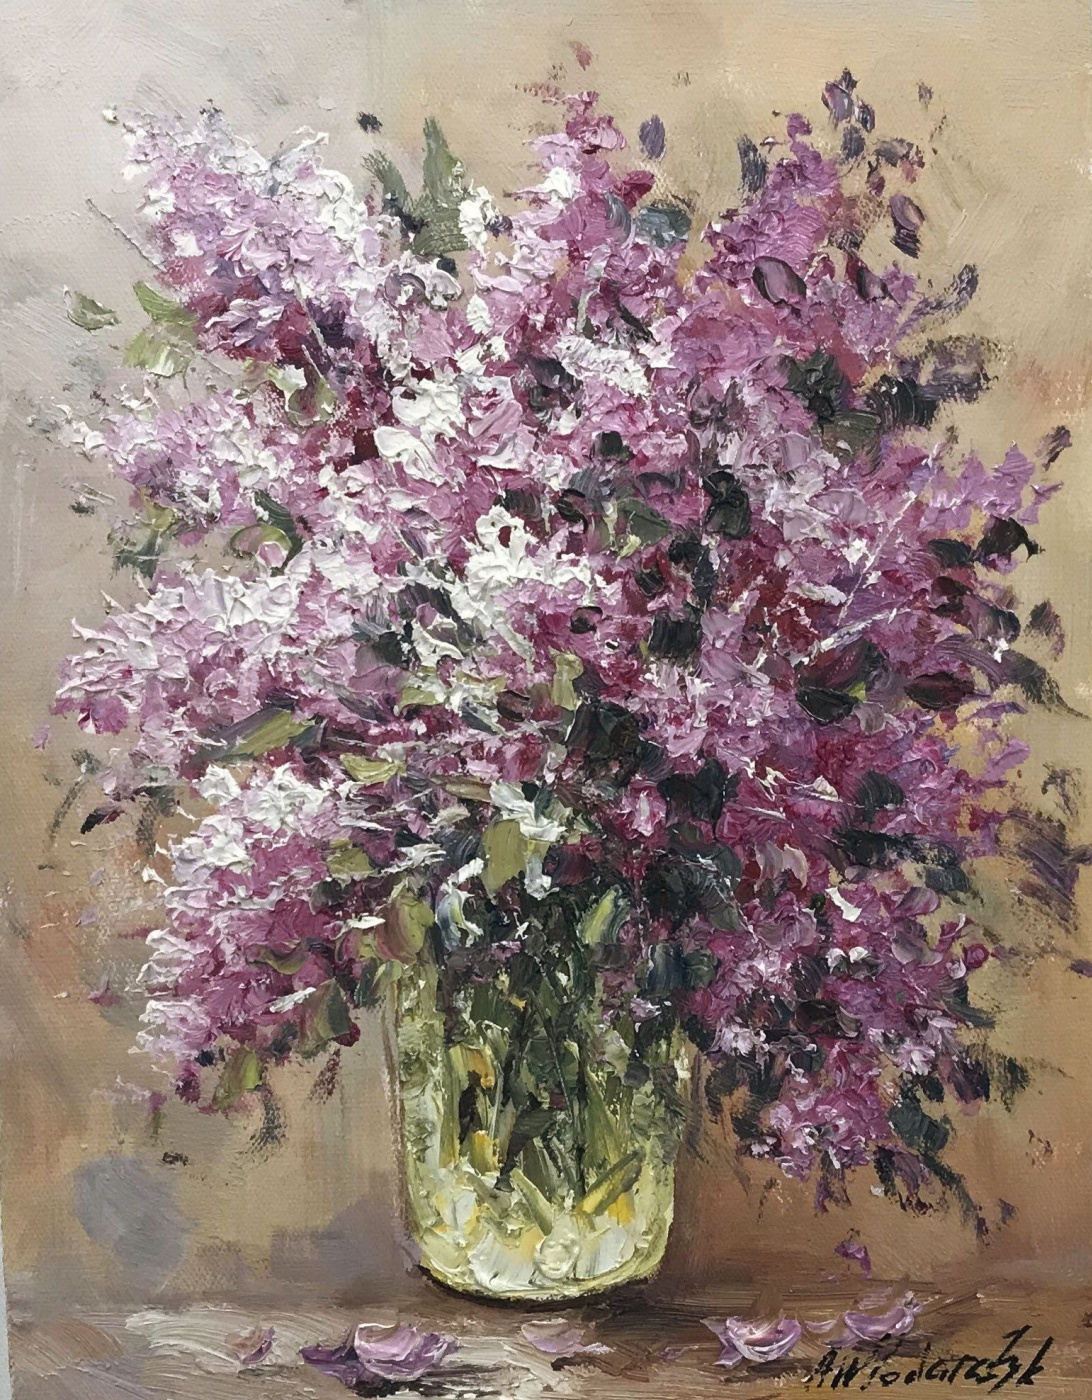 Andrzej Vlodarczyk. A bouquet of lilac in a glass vase N3